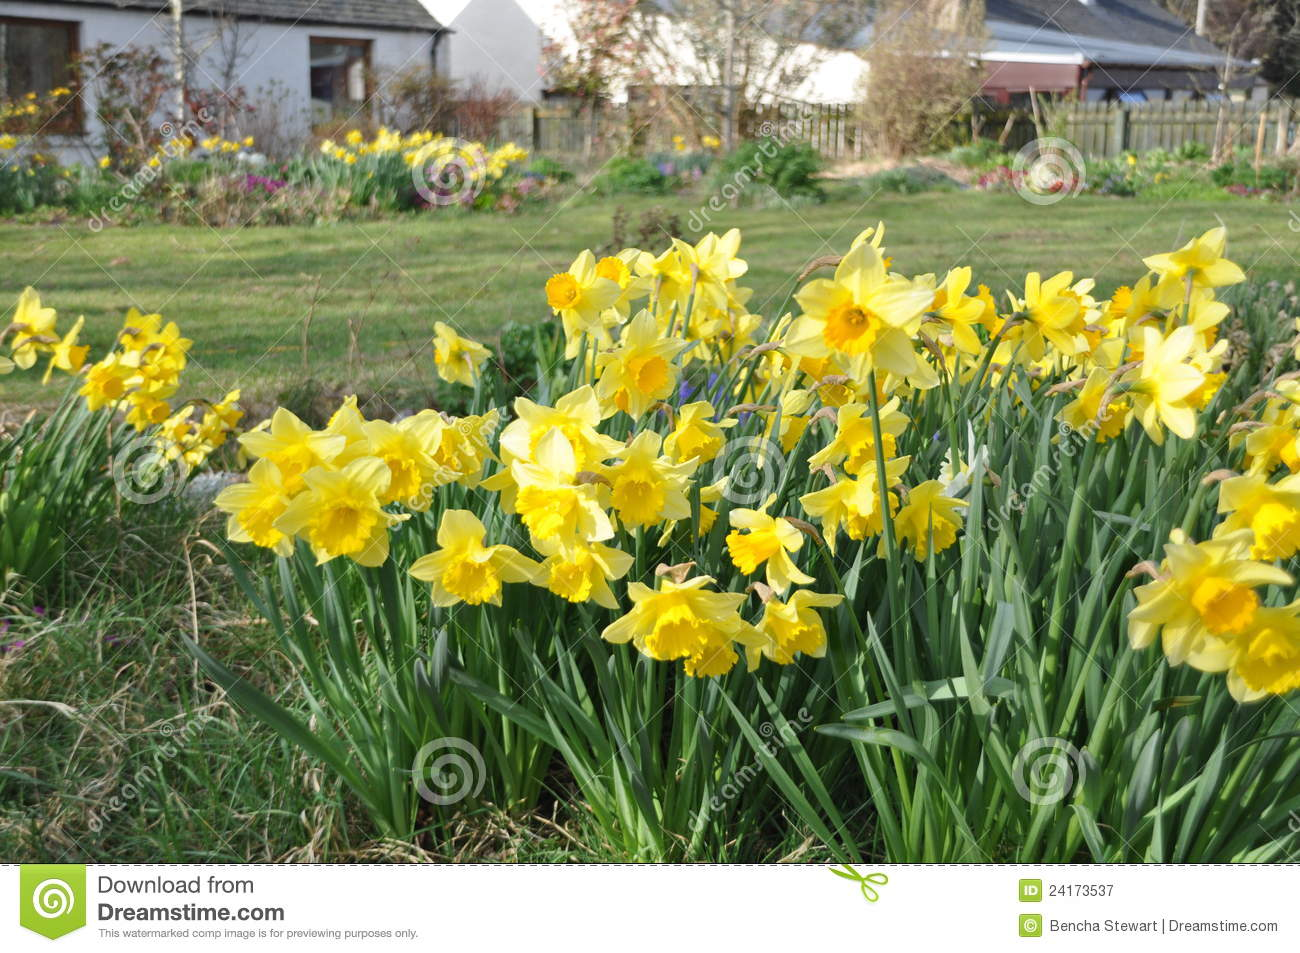 A Widely Grown Daffodil In The Garden Royalty Free Stock